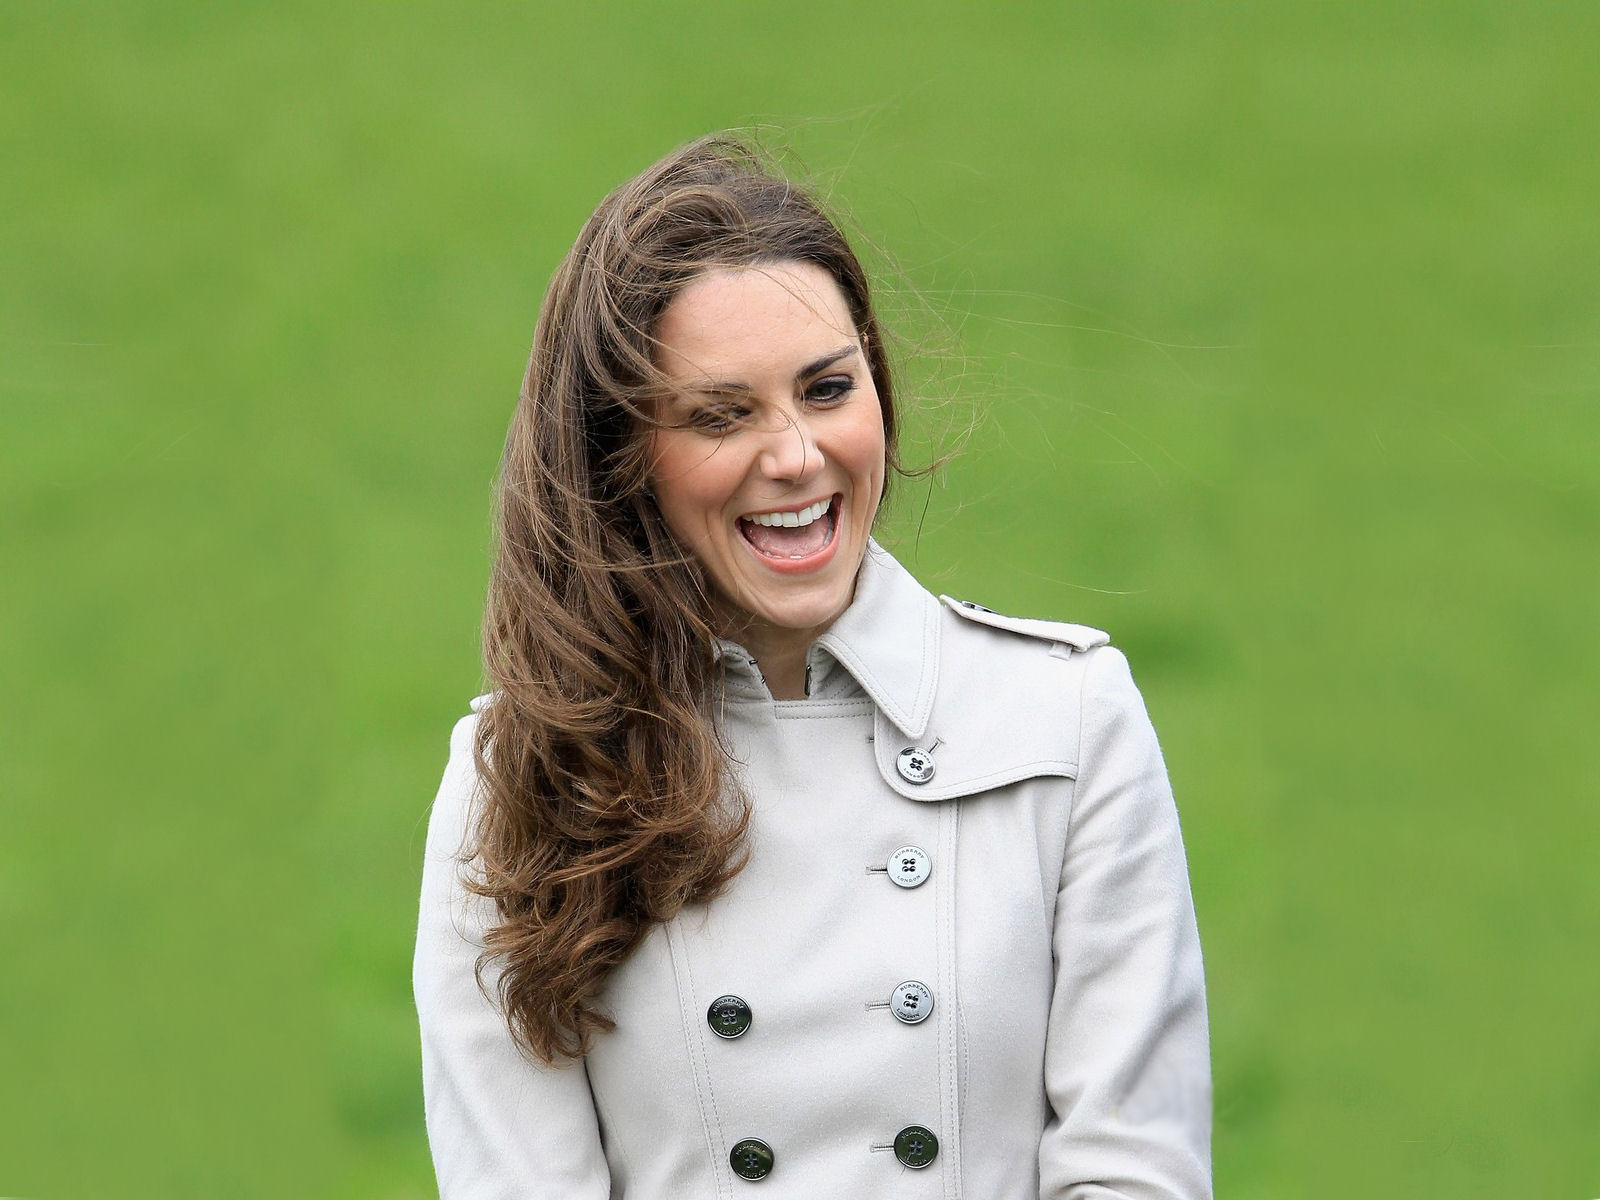 kate middleton wallpaper pictures 60858